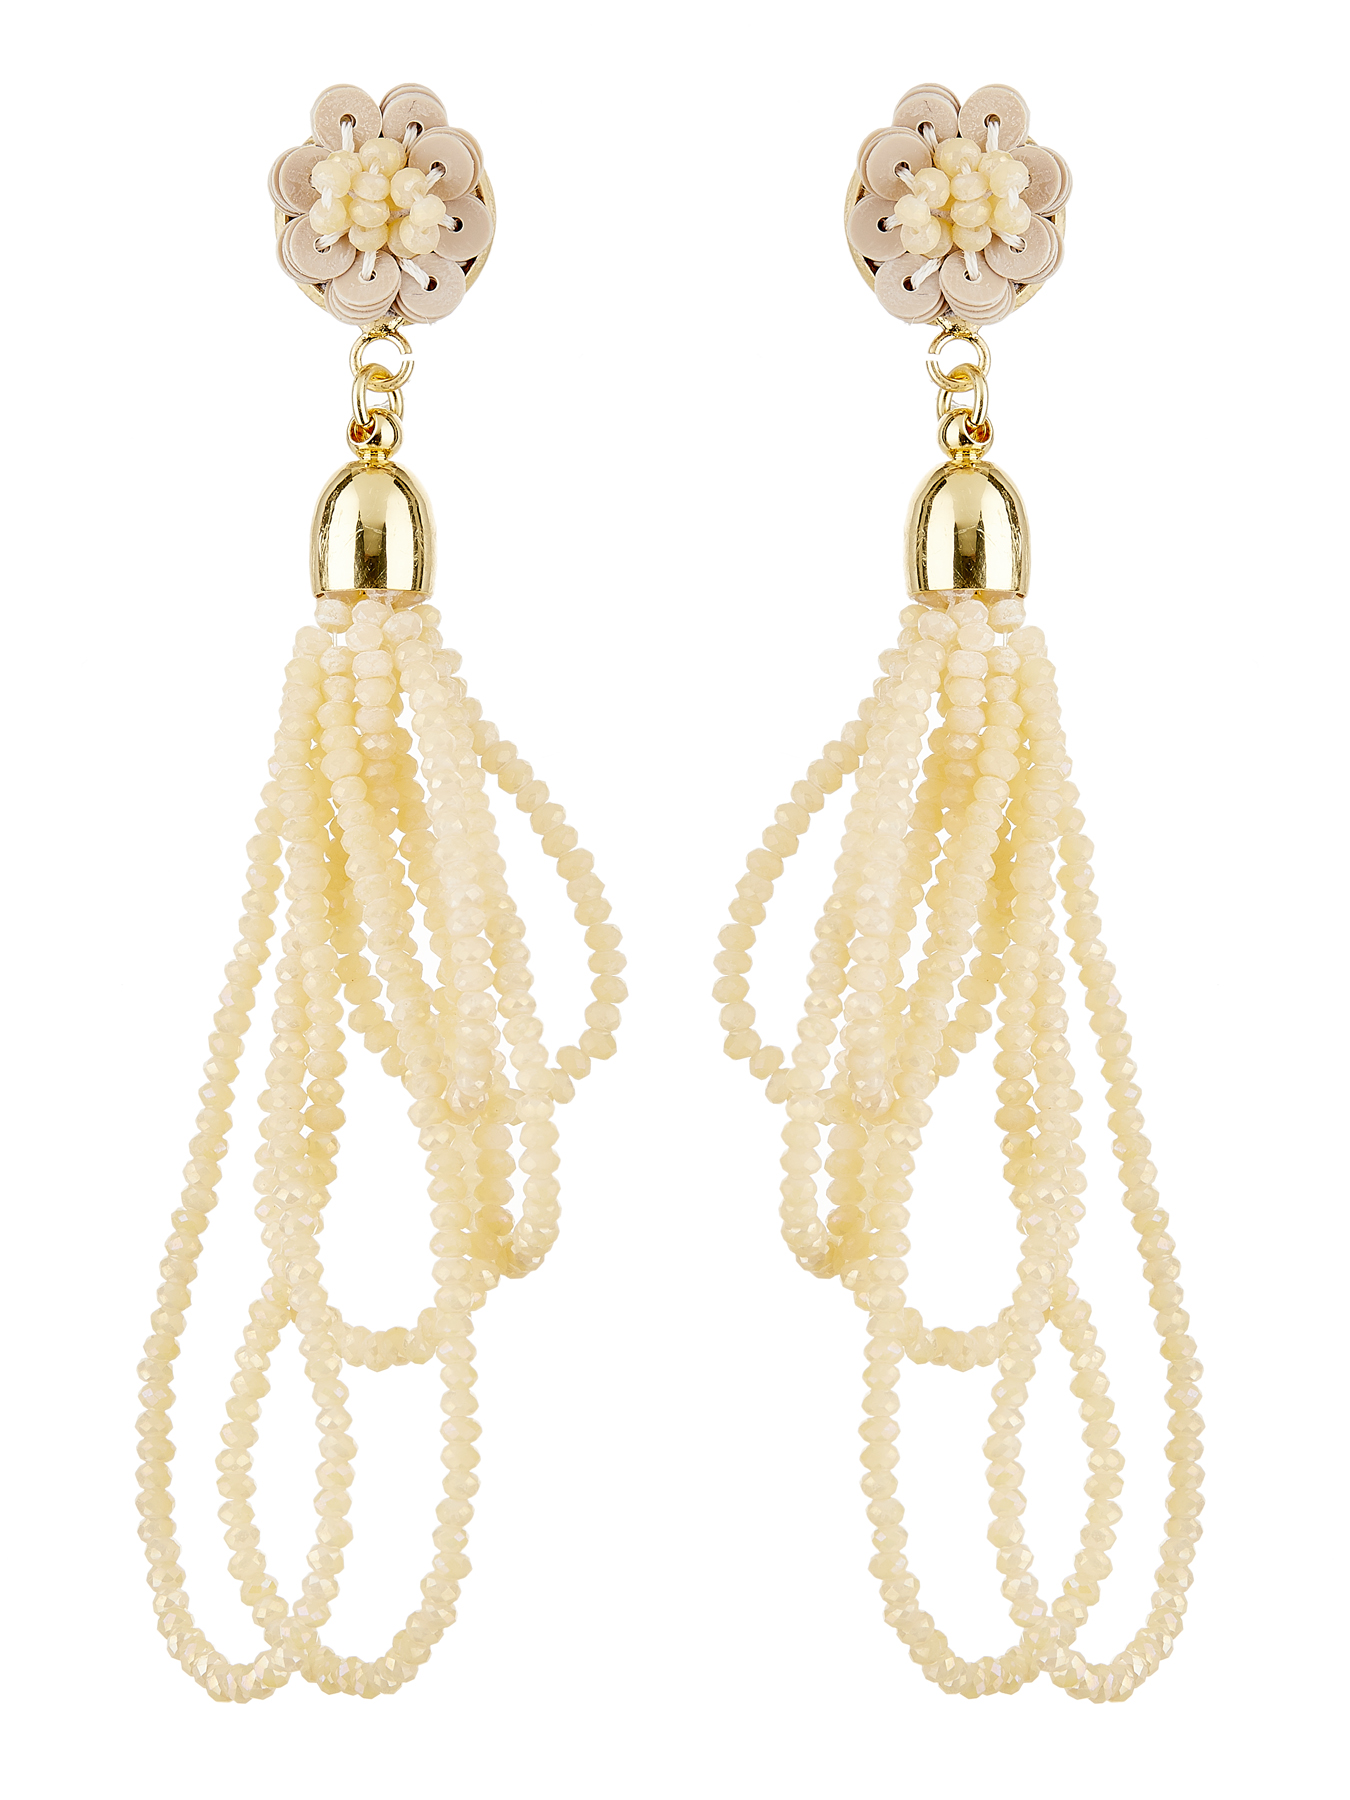 Clip On Earrings - Roya G - gold drop earring with loops of sparkling natural glass beads